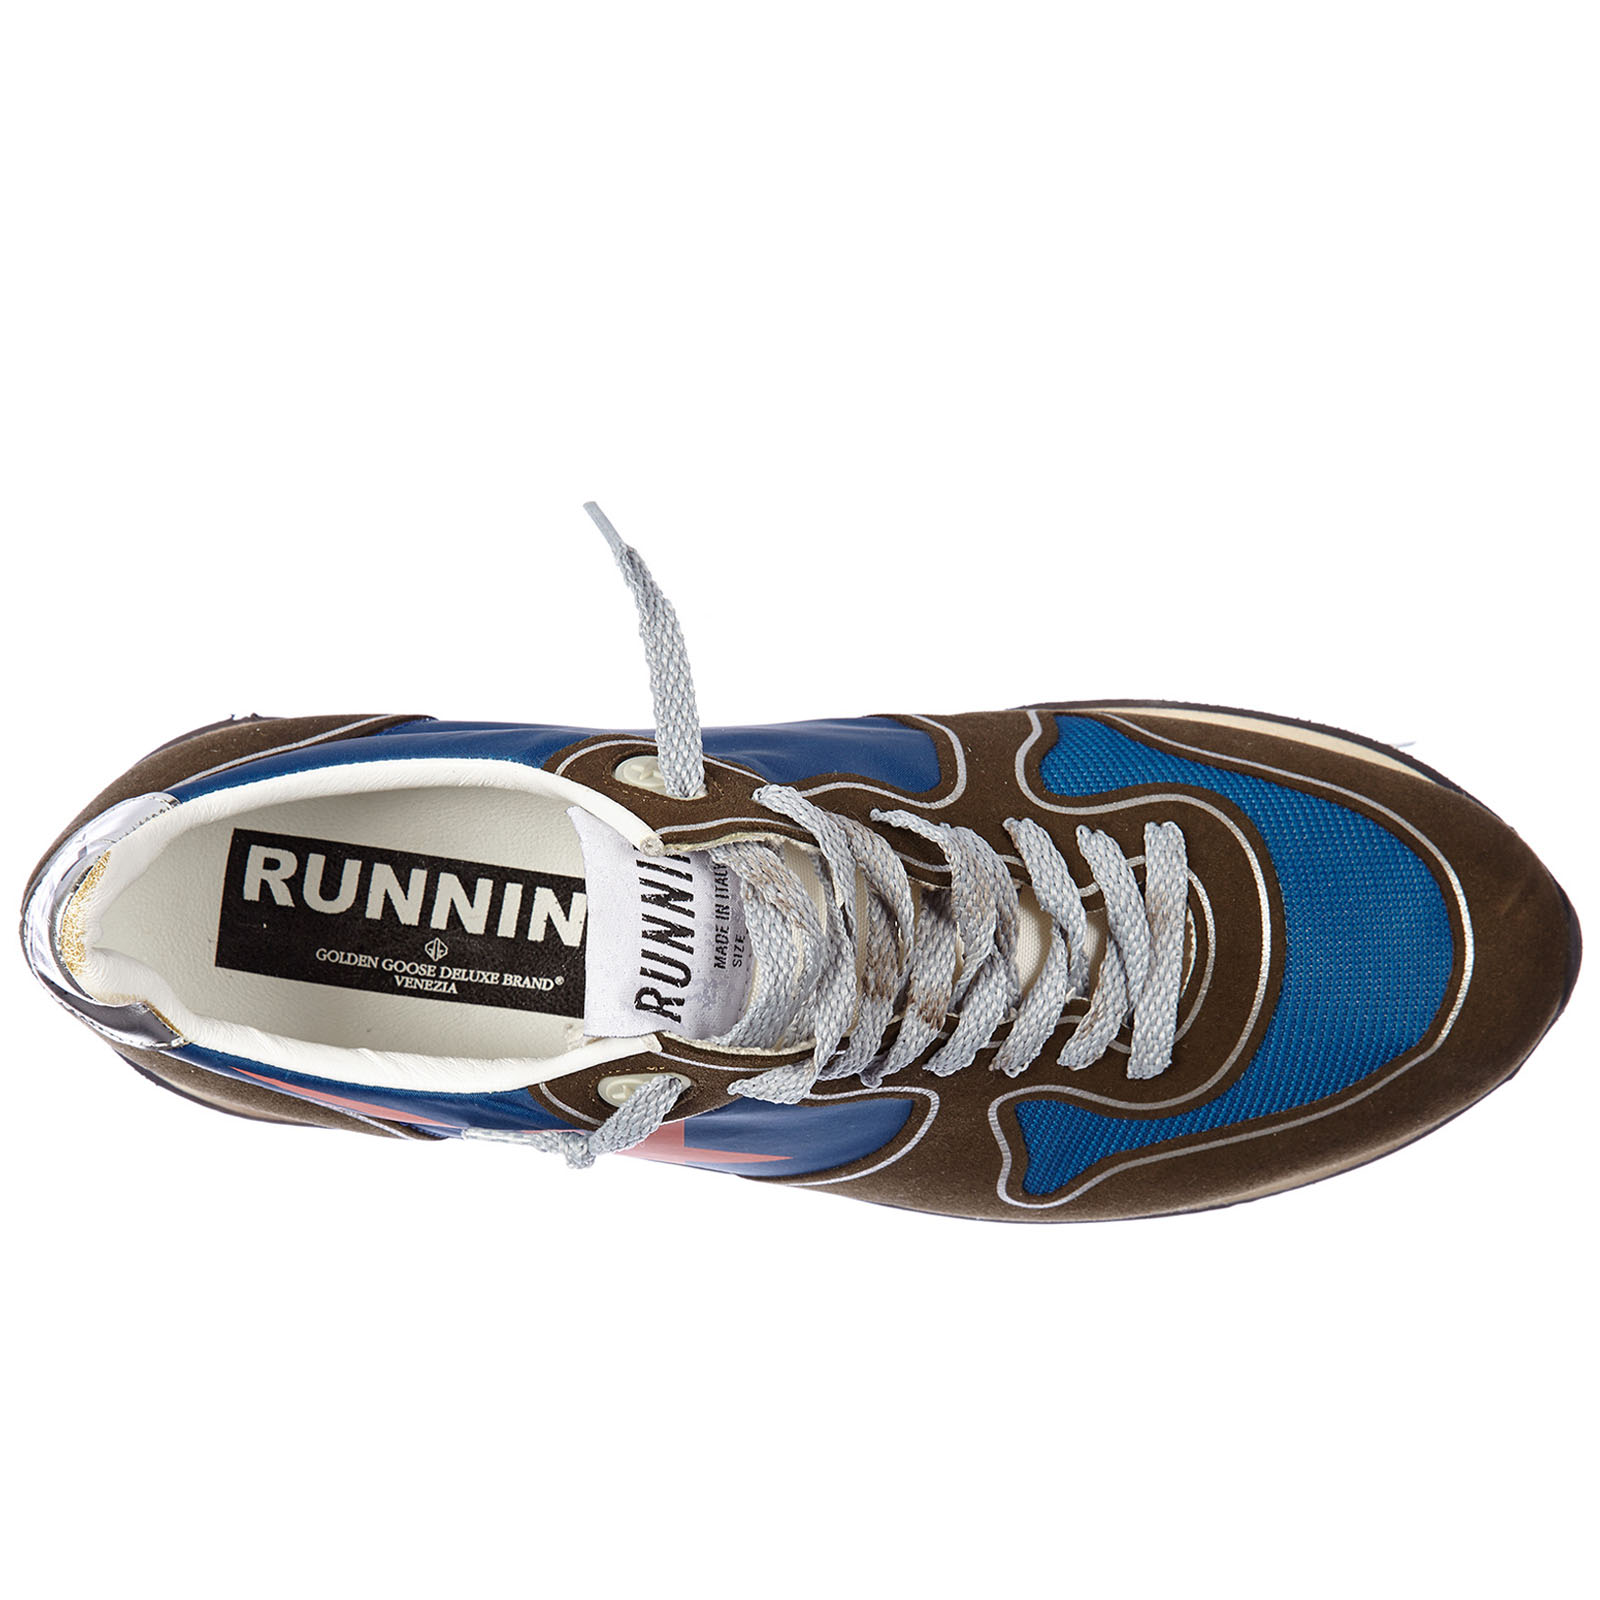 Chaussures baskets sneakers femme en daim running